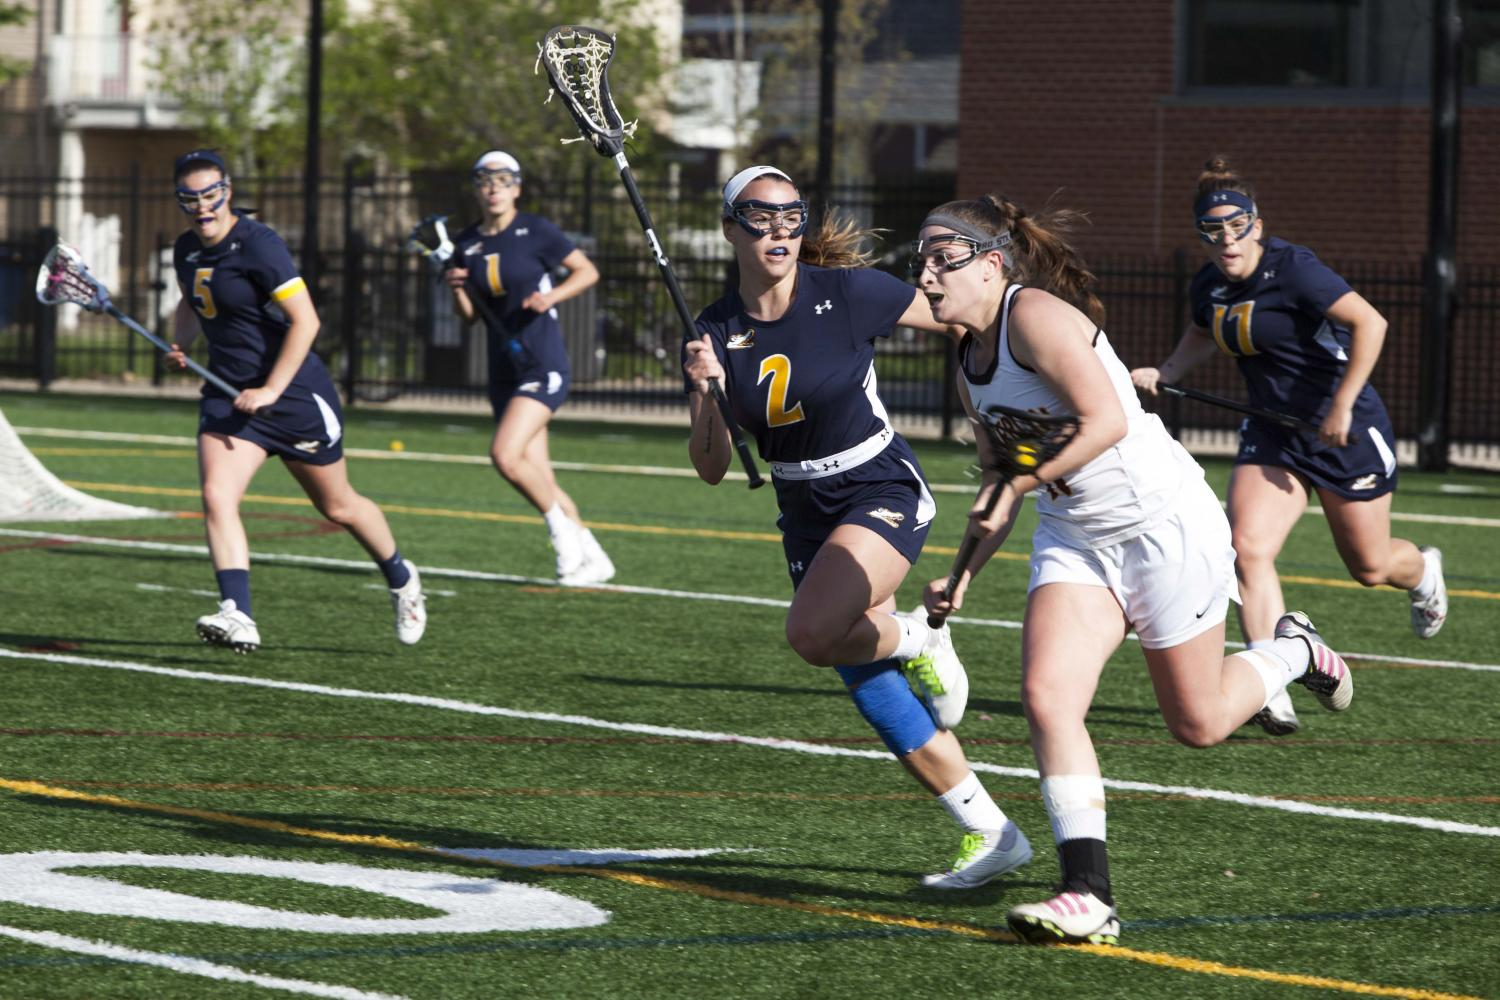 Sophomore midfielder Jenna Butler races past an Allegheny College defender in the NCAC Semifinals last Wednesday. The Yeowomen defeated the Gators 13–8 to secure a spot in the NCAC Championship for the second time in the past three years.